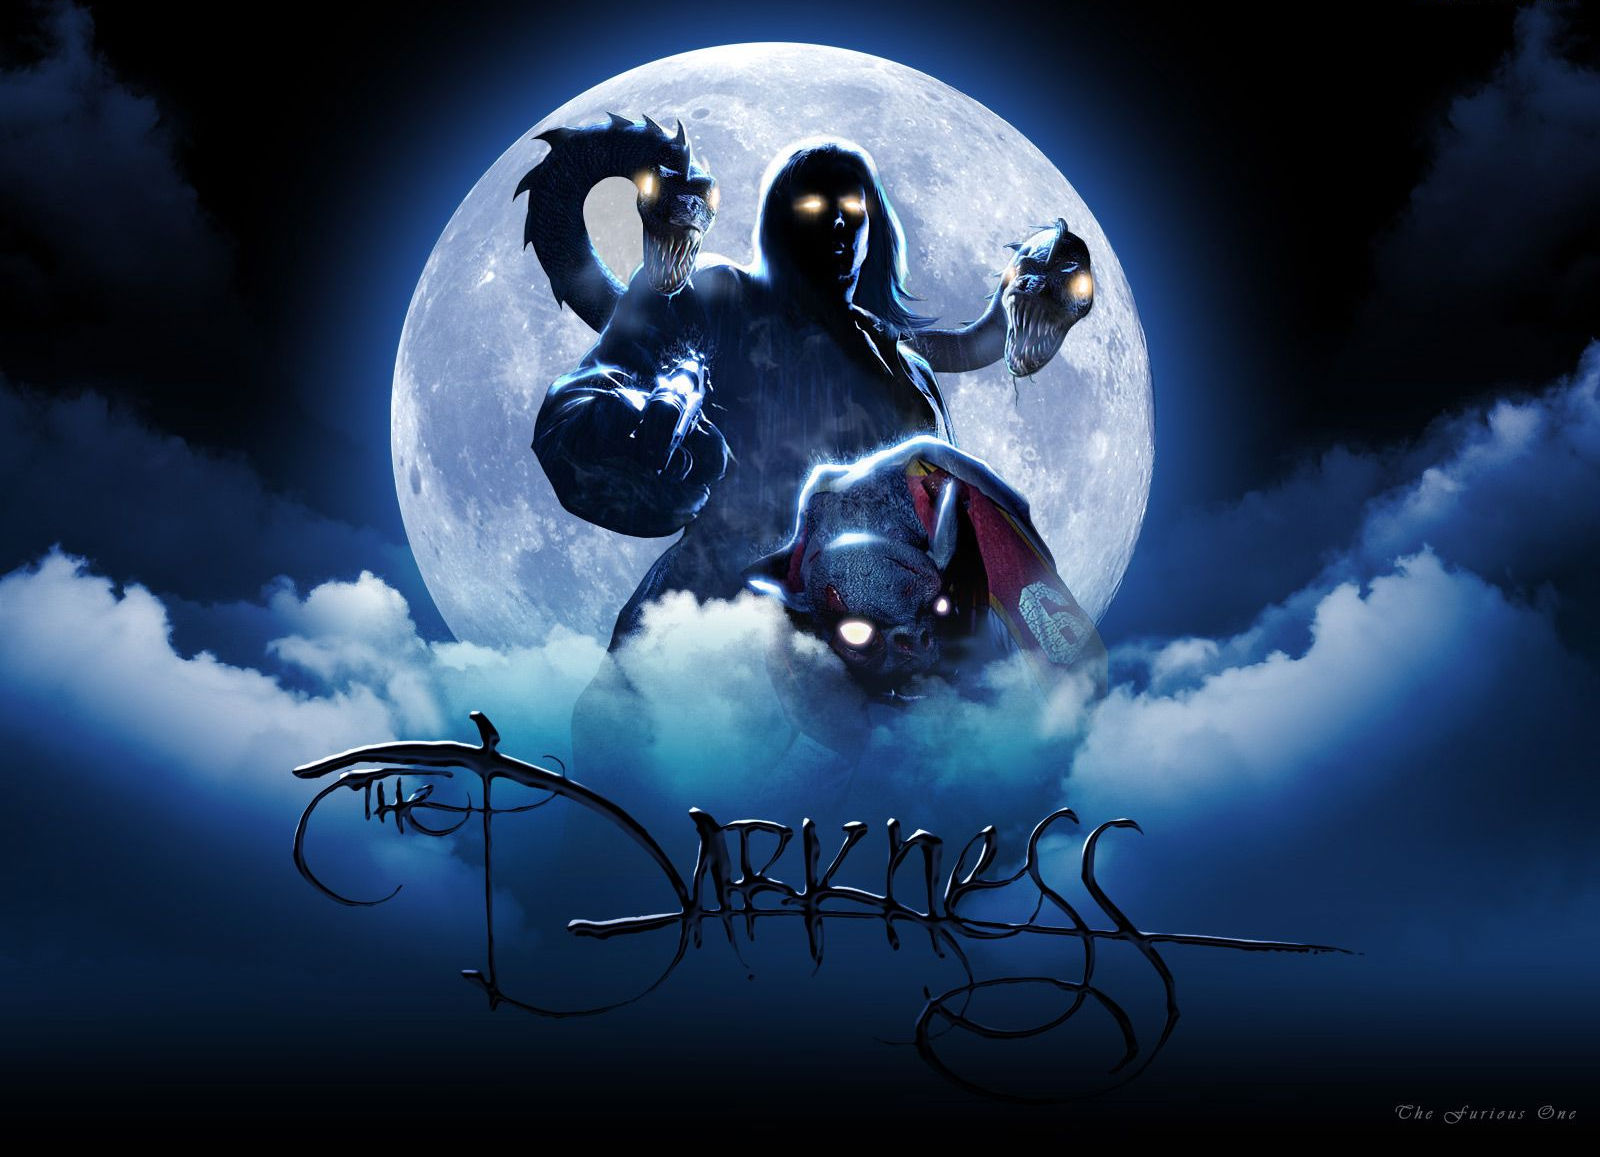 Videogame Wallpapers With Quotes 7 The Darkness Hd Wallpapers Backgrounds Wallpaper Abyss